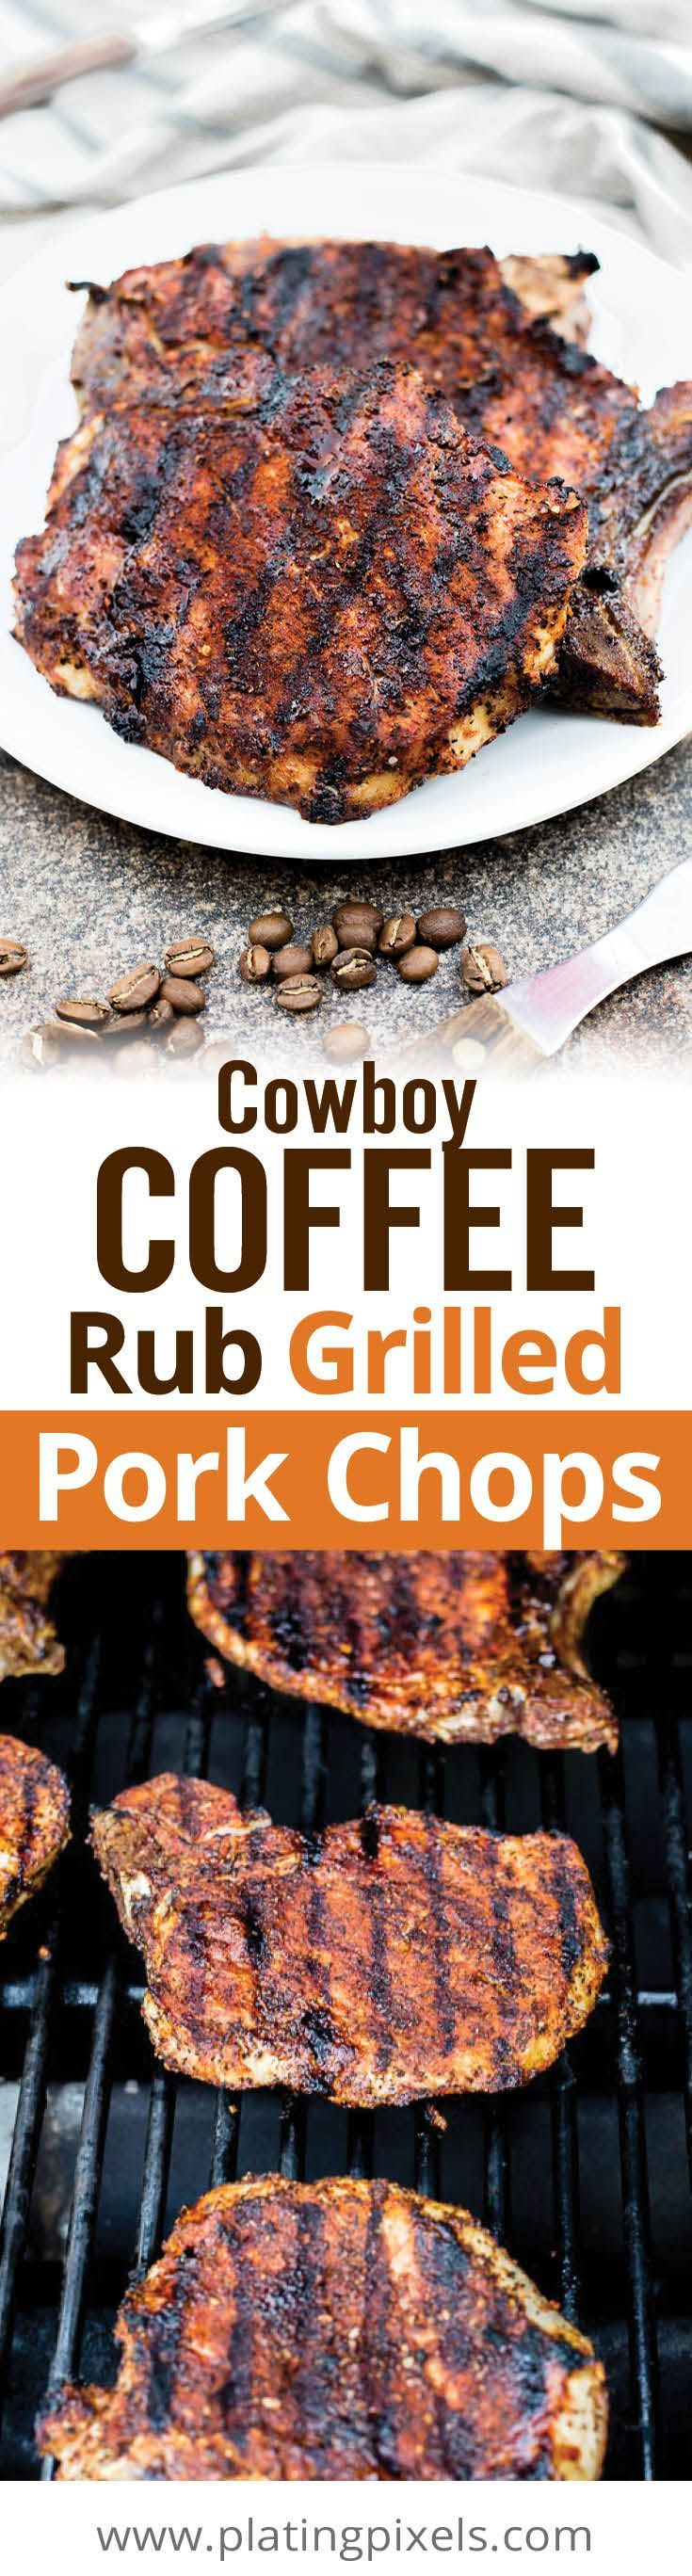 Easy spiced Cowboy Coffee Rub Grilled Pork Chops. Coffee, brown sugar, smoked paprika, garlic, cumin, spices and herbs creates caramelized, tender grilled pork. Clean, natural ingredients for a gluten free, healthy barbecue meat made with /smithfieldfoods/ at /walmart/ #GrillPorkLikeASteak #ad - http://www.platingpixels.com